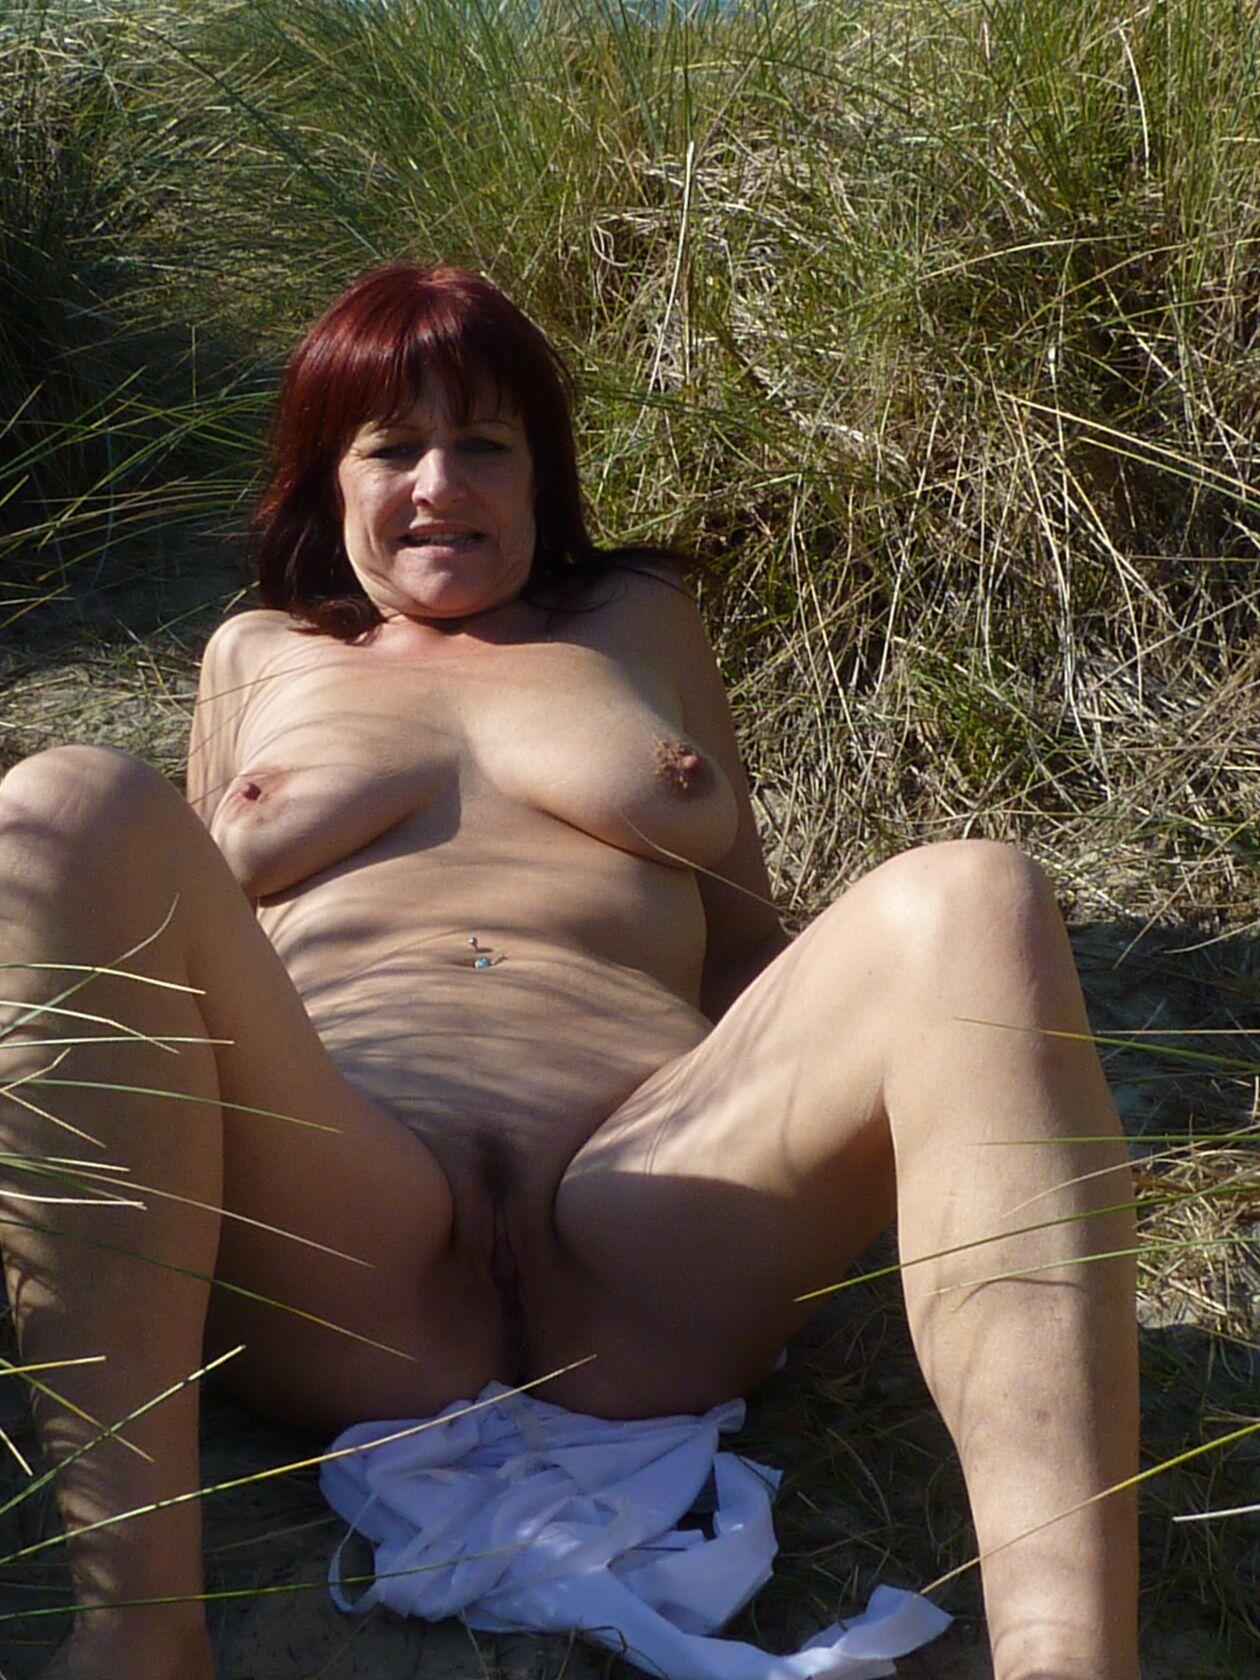 Milf slut goes naked on the beach. real nudity